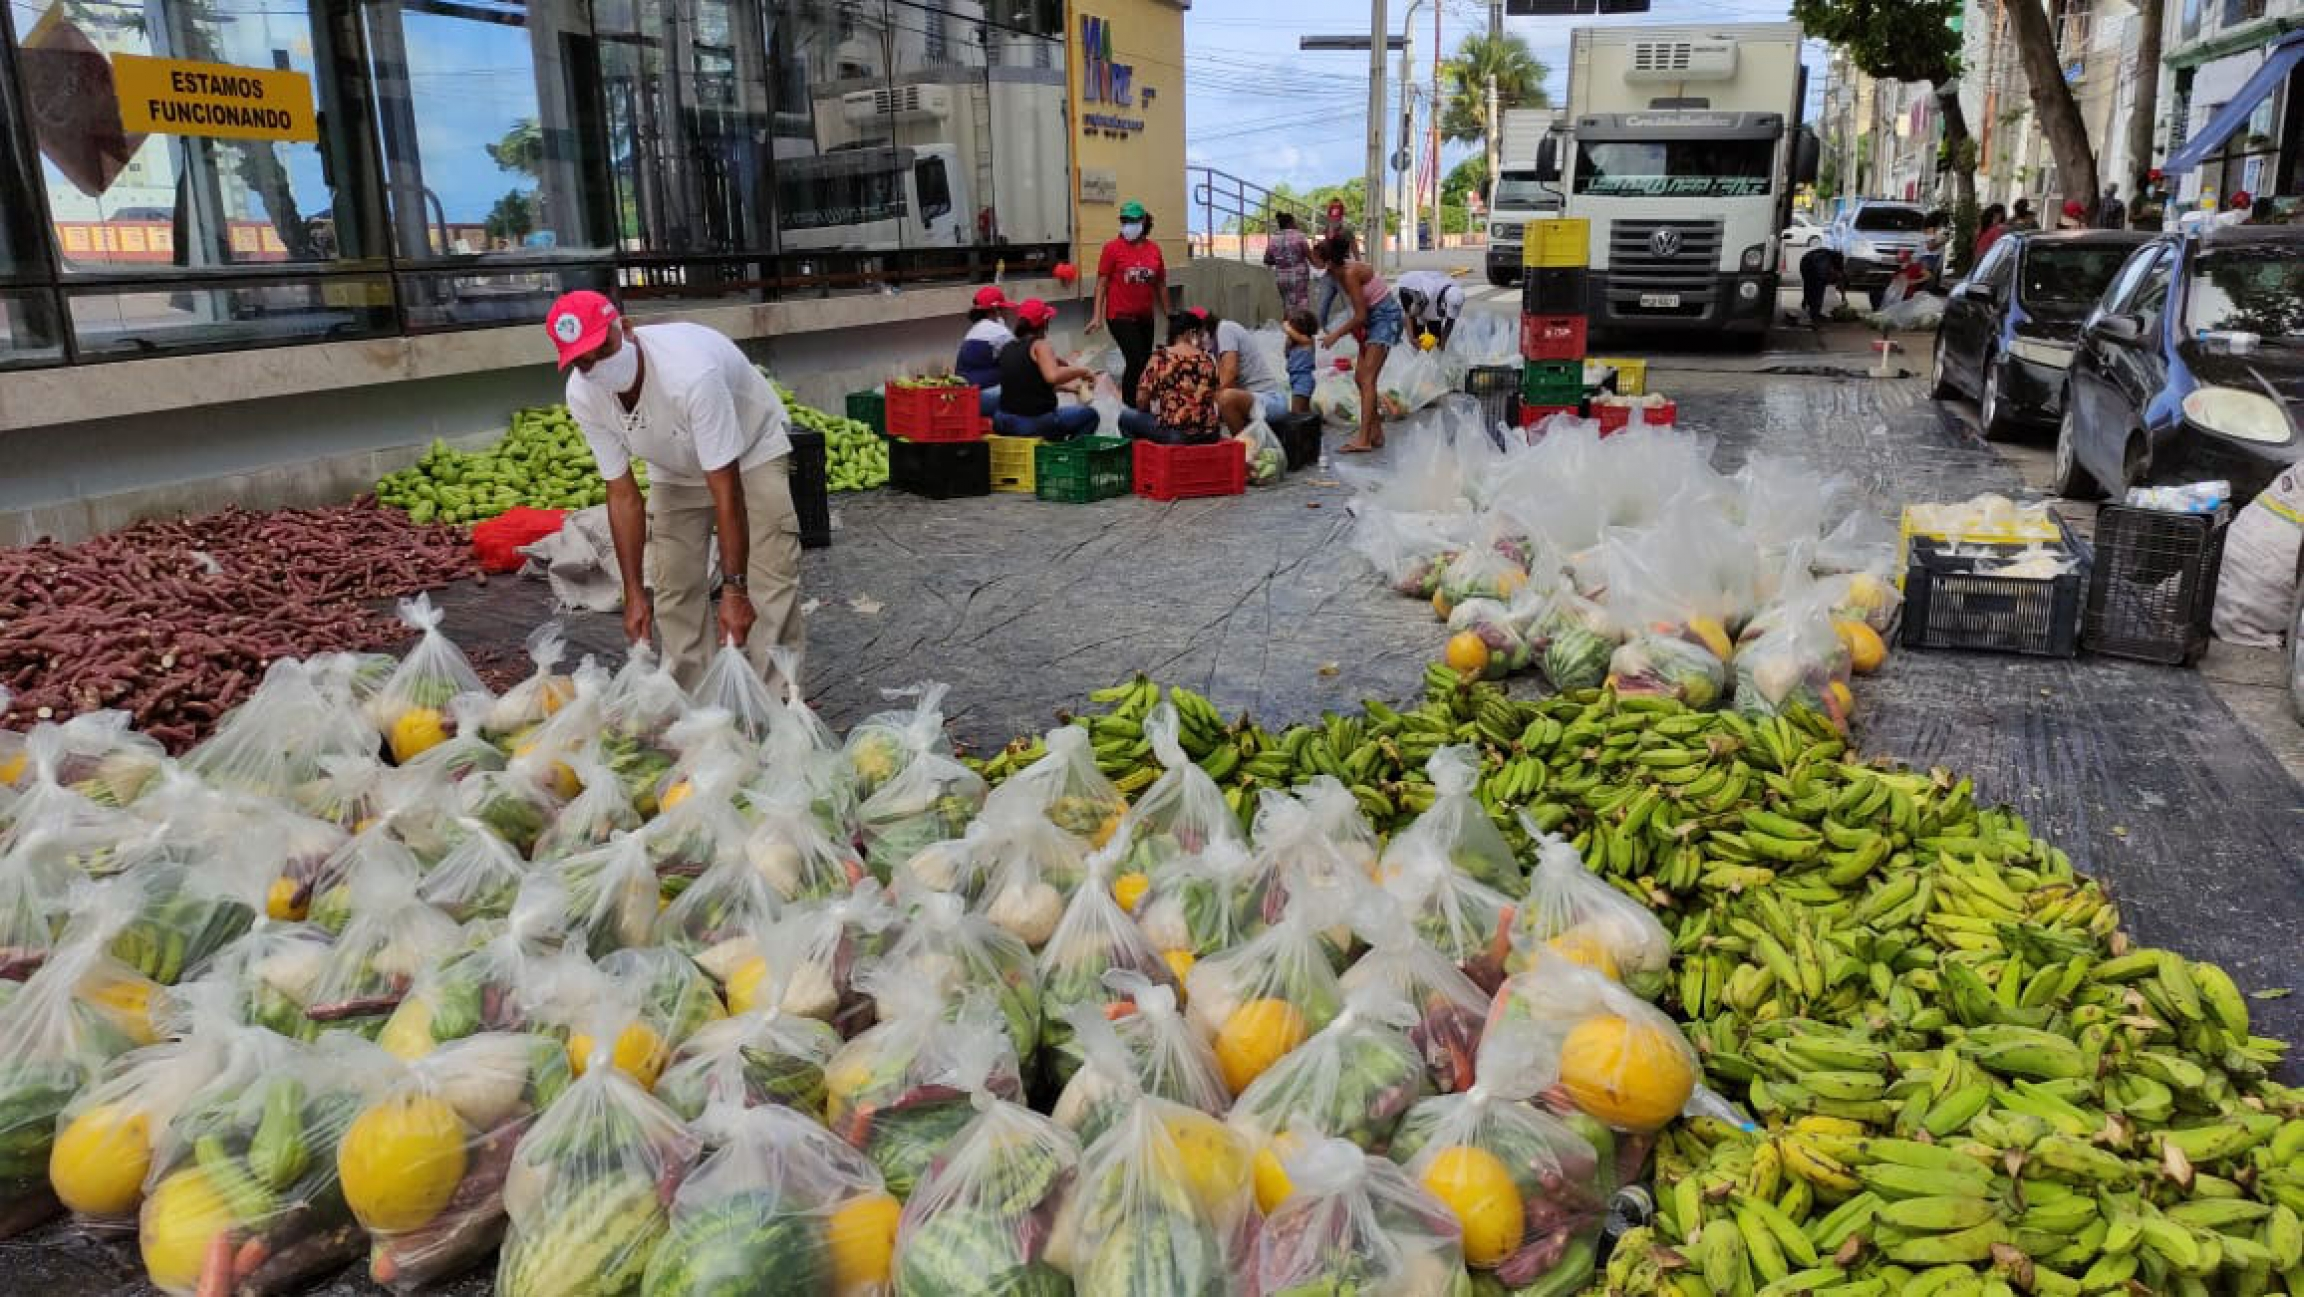 A man stands near lots of bags of watermelons